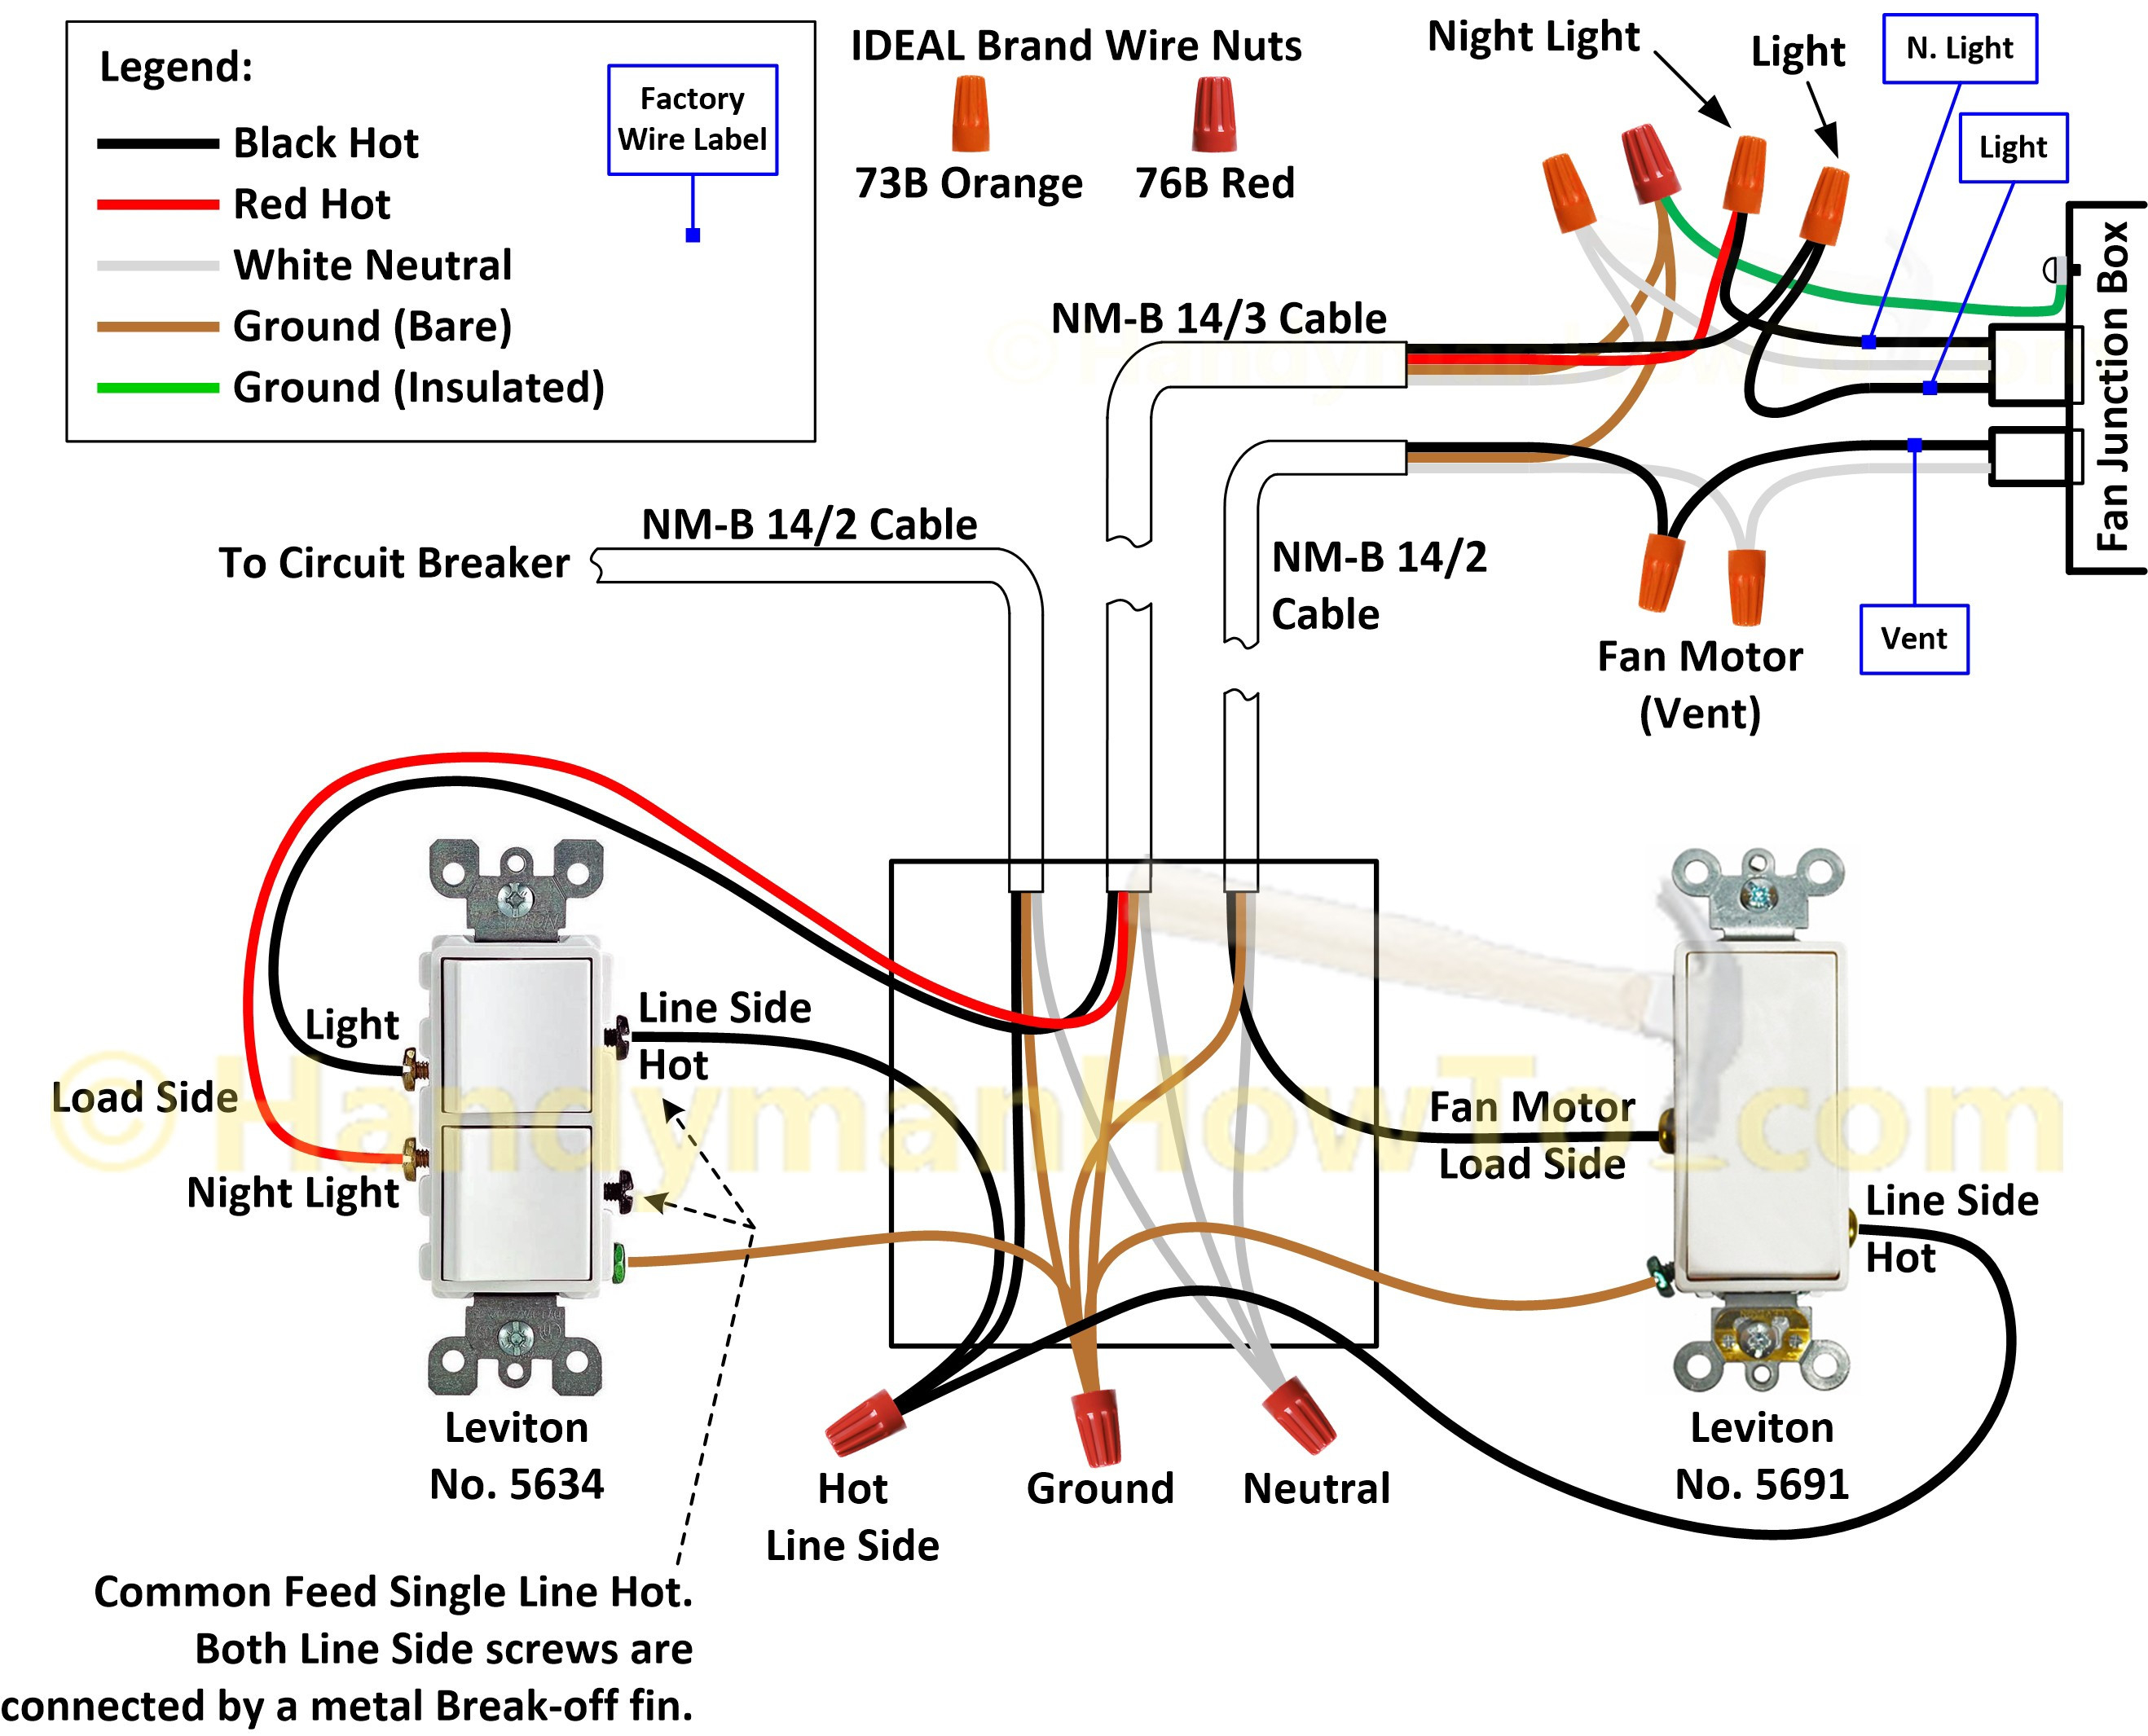 westinghouse ceiling fan wiring diagram Download-Wiring Diagram For Westinghouse Ceiling Fan New Lighting Corp 3 Way Light Switch Wall At 1 19-o